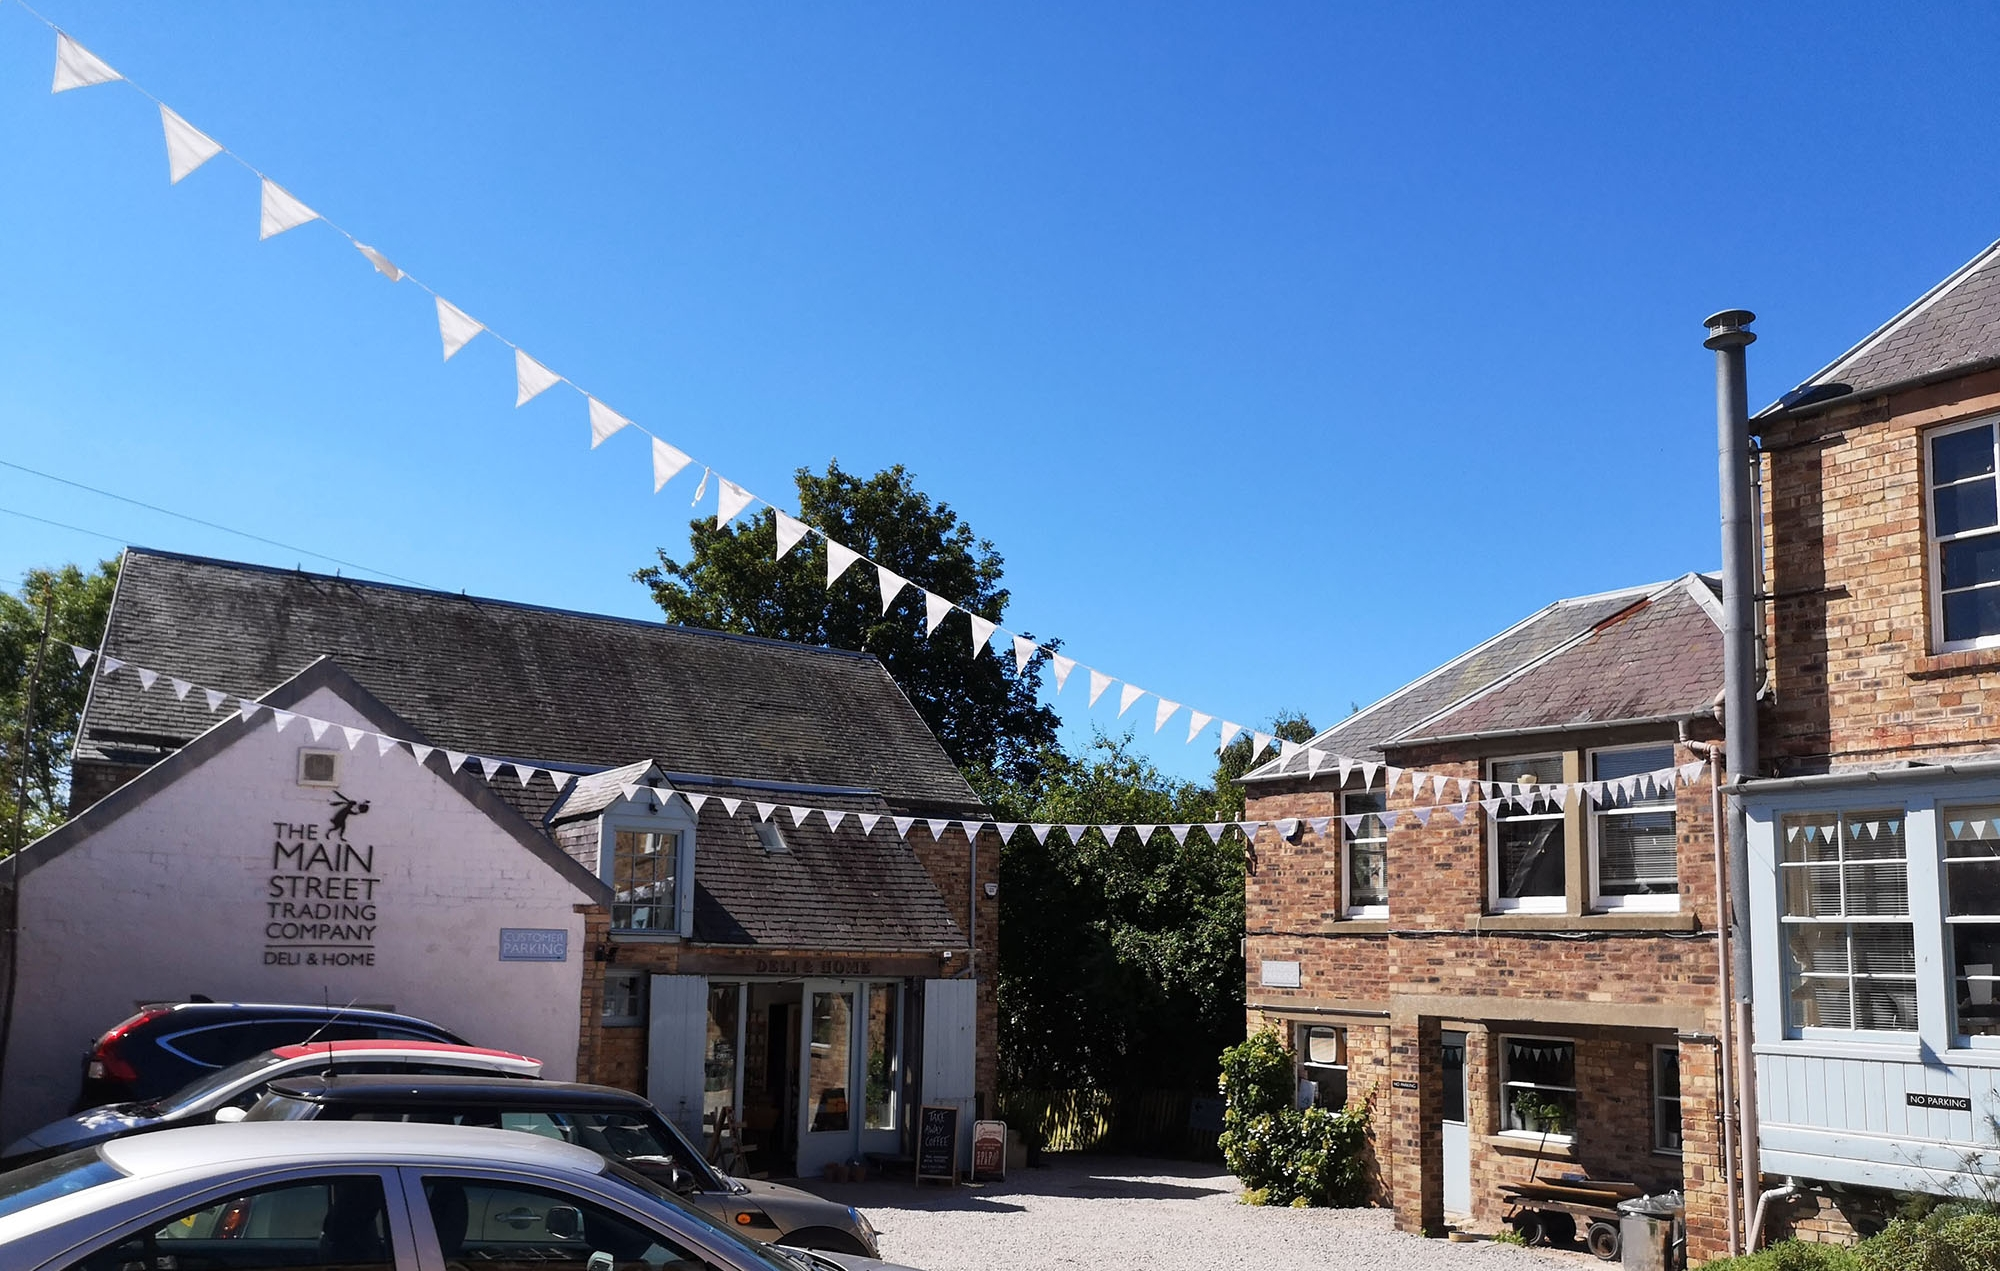 The Mainstreet Trading Company - St Boswells, the Scottish Borders